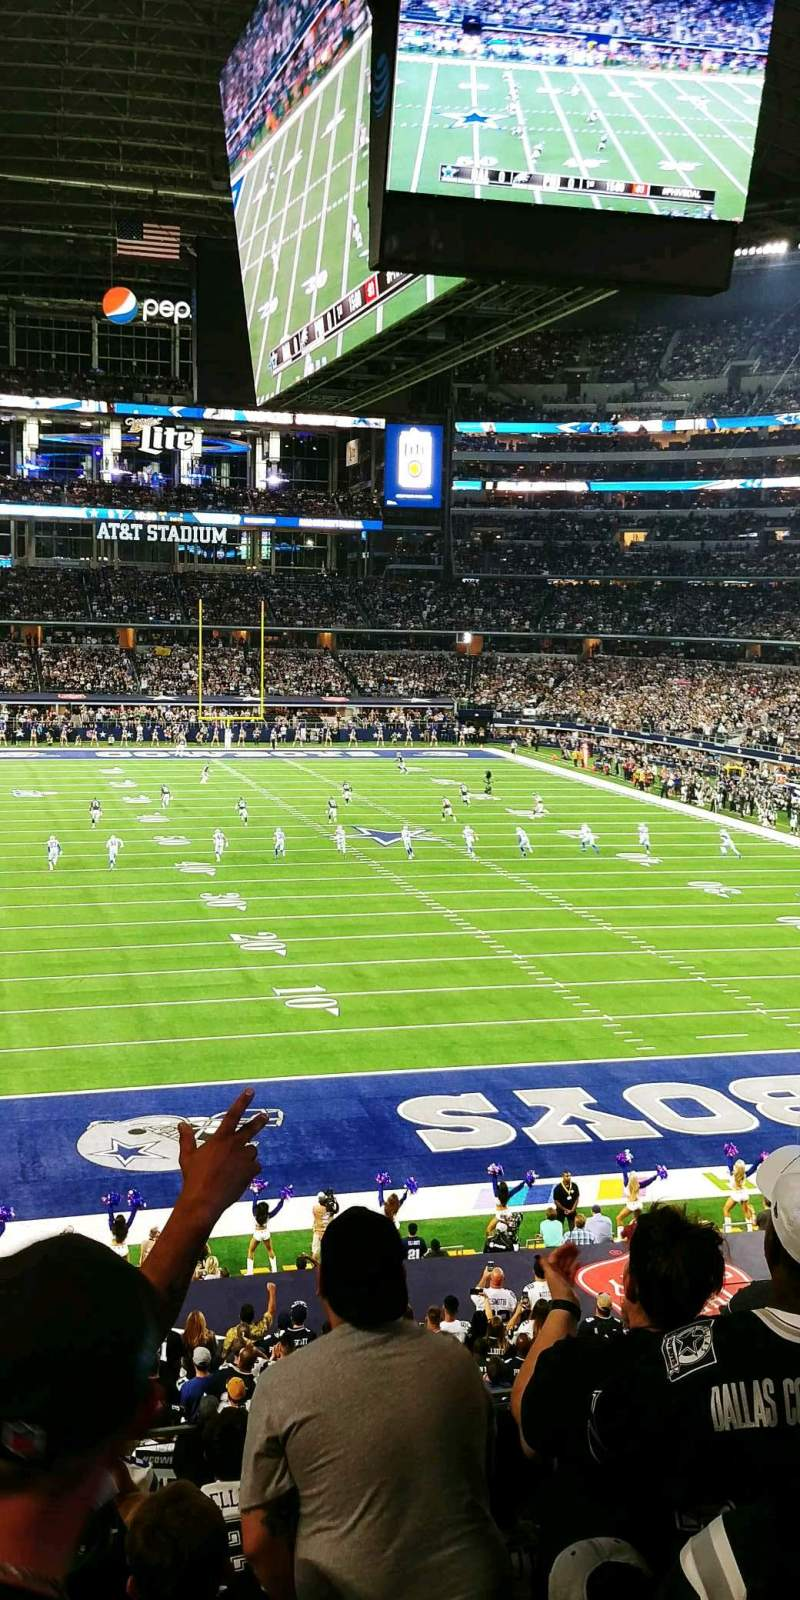 Seating view for AT&T Stadium Section 250 Row 7 Seat 5